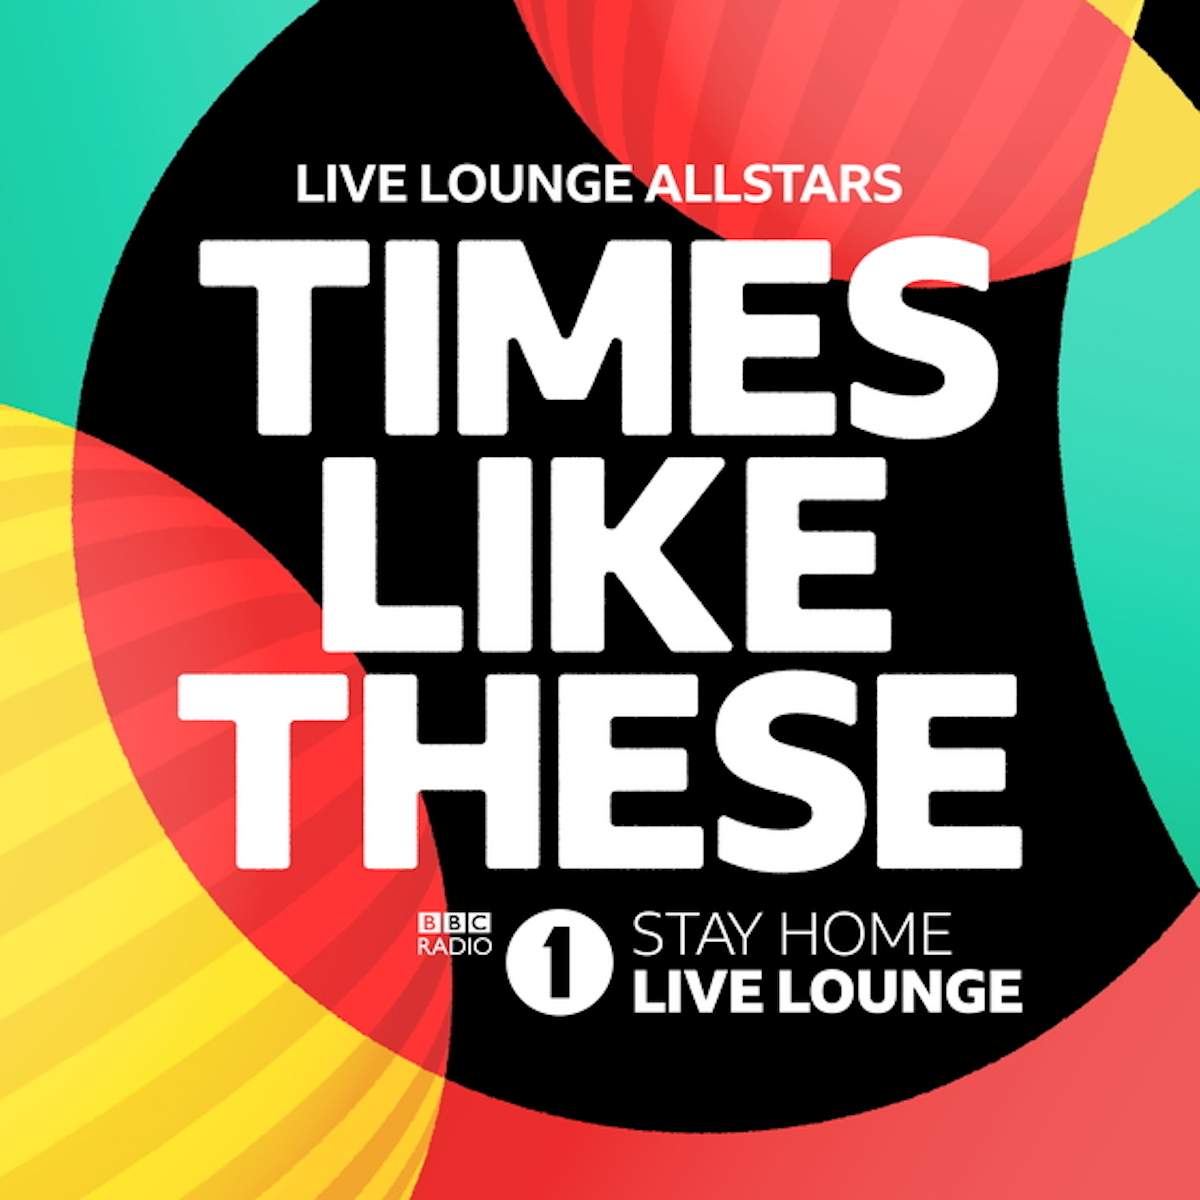 Foo Fighters『Times Like These』「The Stay Home Live Lounge」